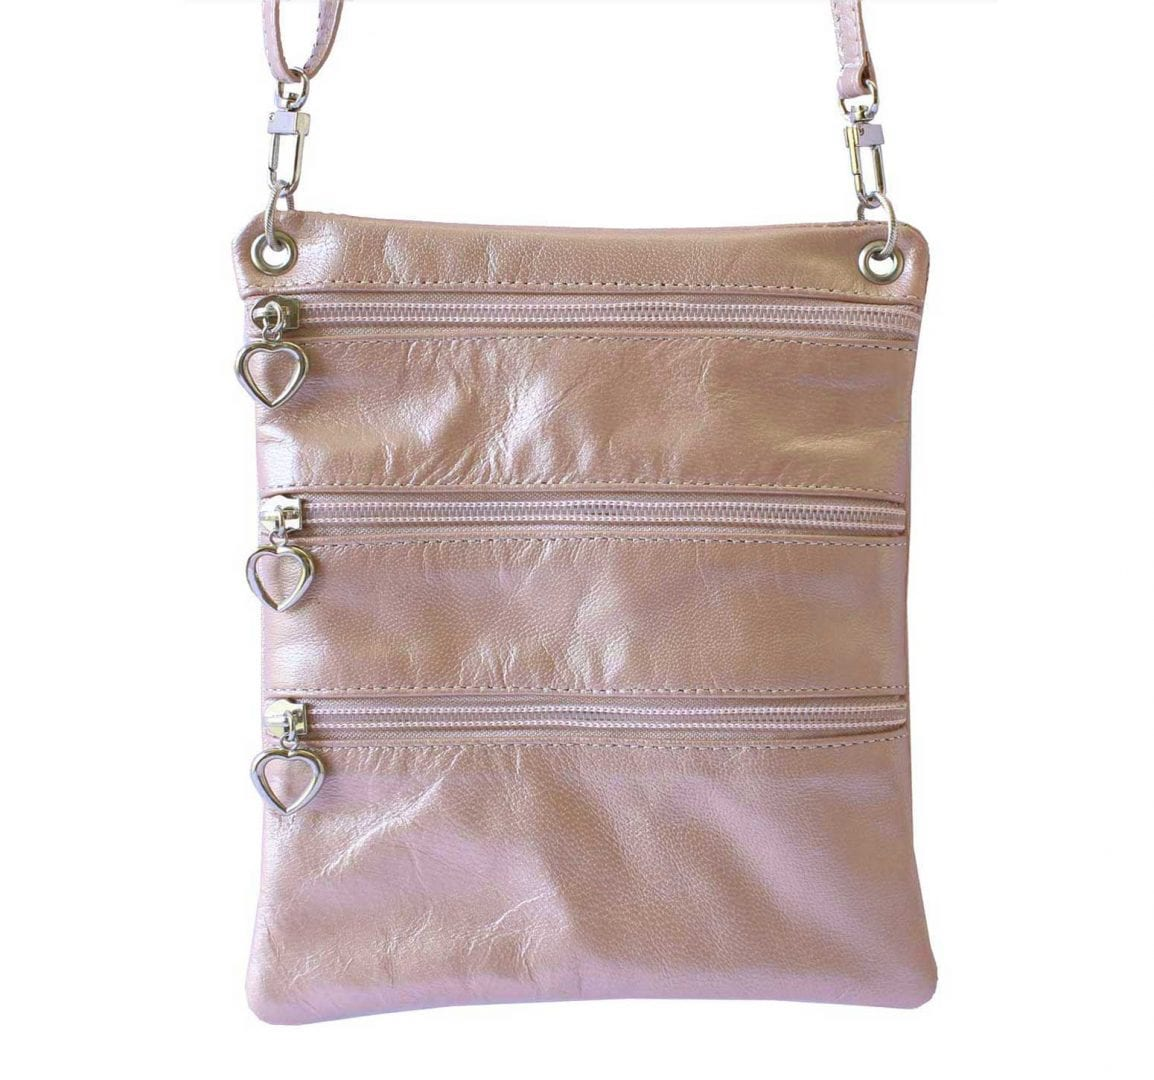 pink leather sidekick mini bag